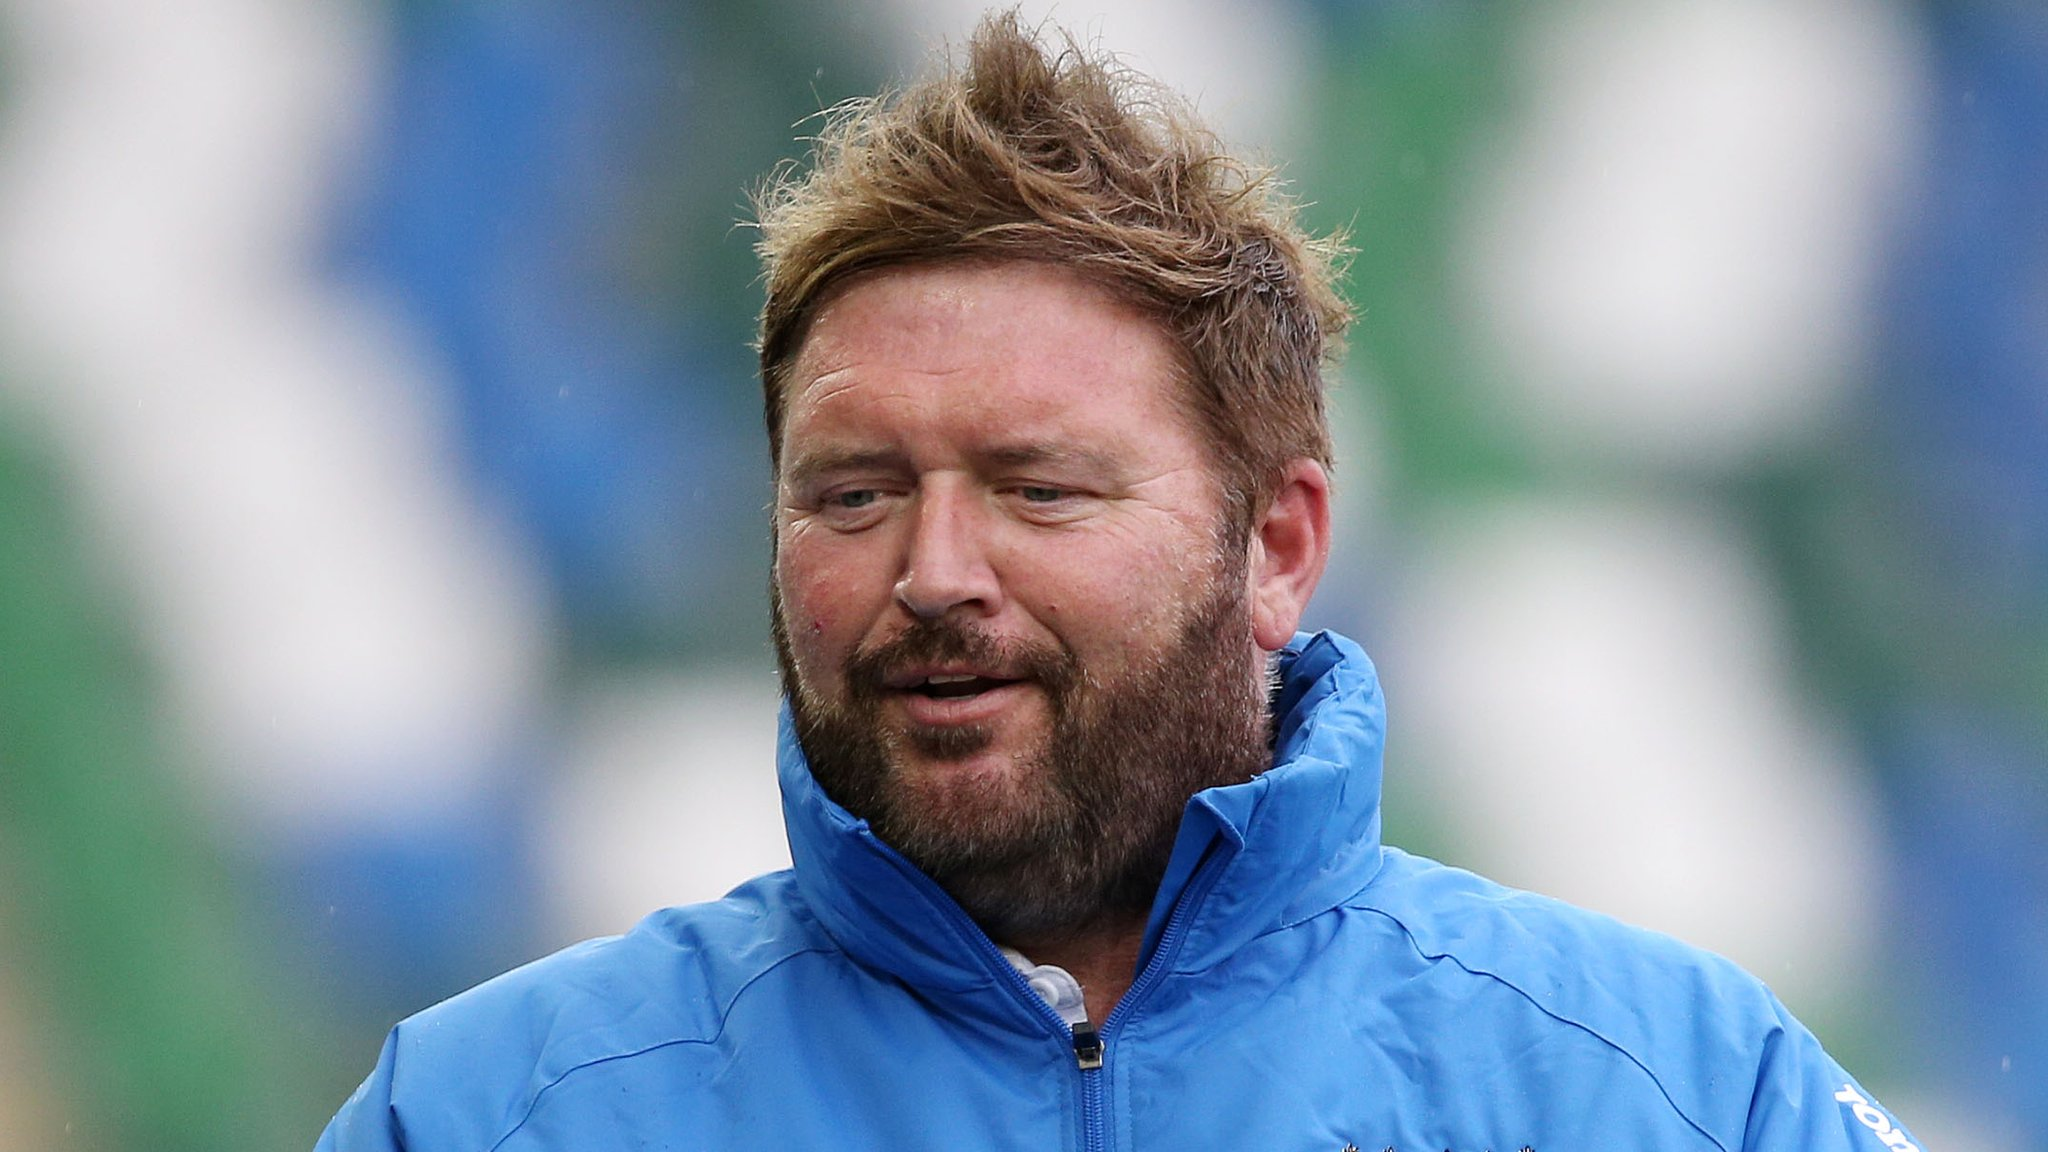 Niall Currie watches Ards game as move to Portadown appears likely